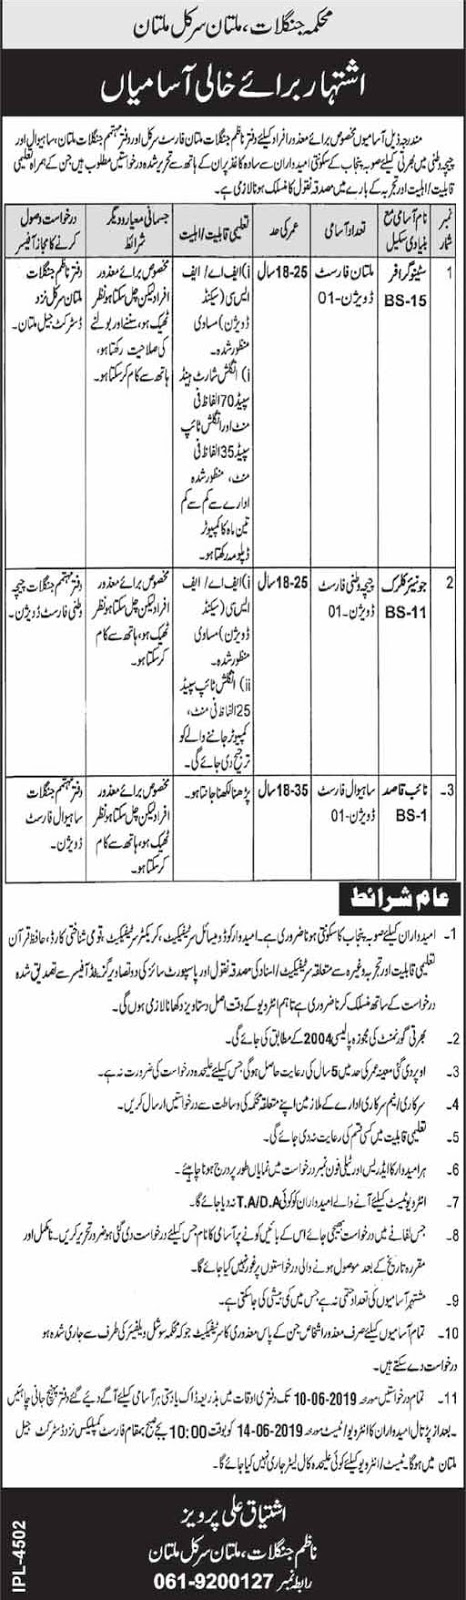 Forest Department Punjab Jobs 2019